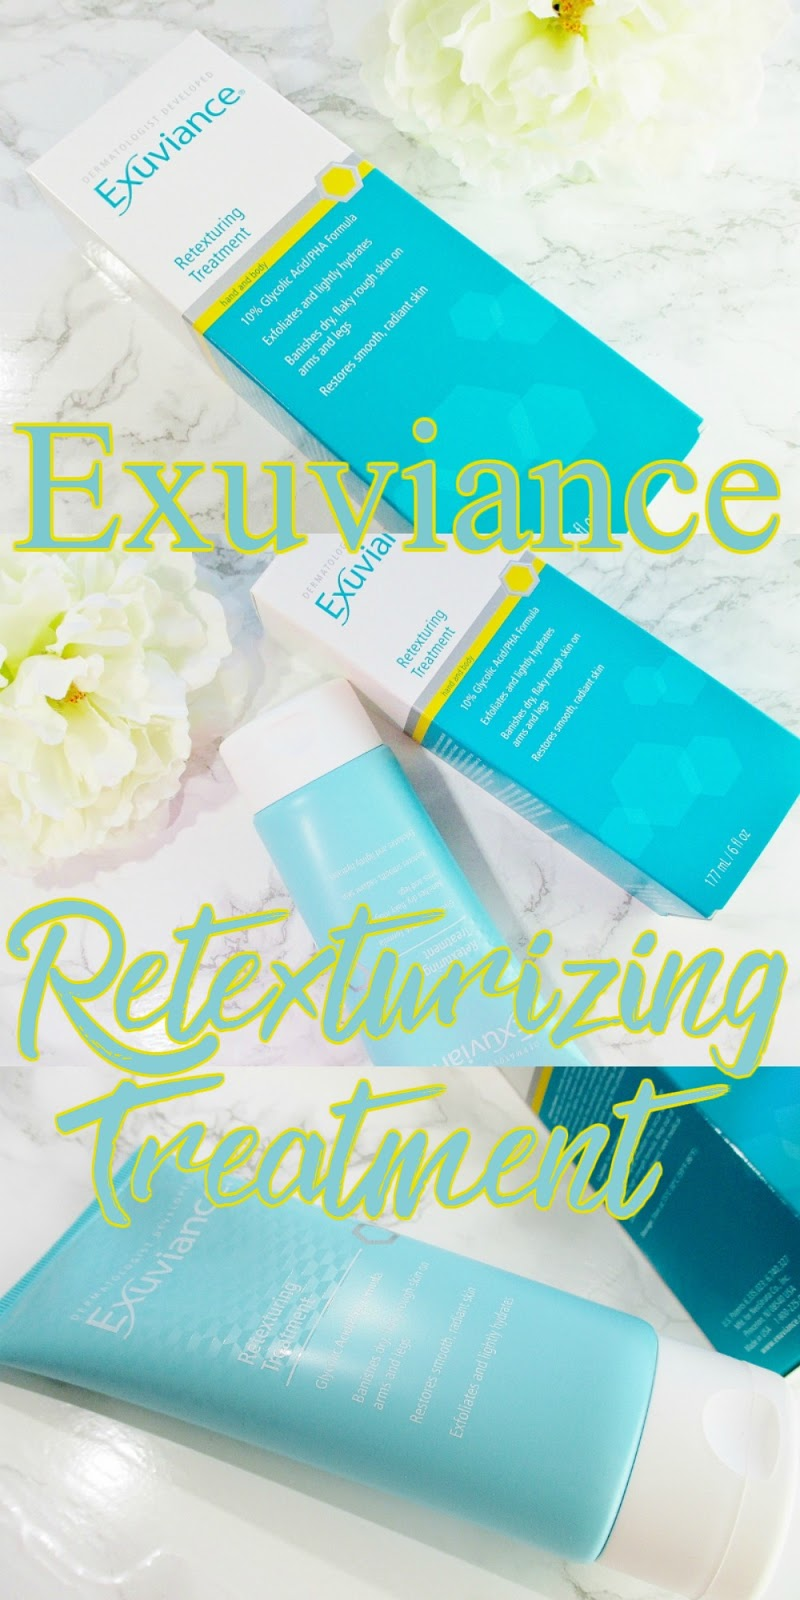 exuviance-retexturizing-treatment-3